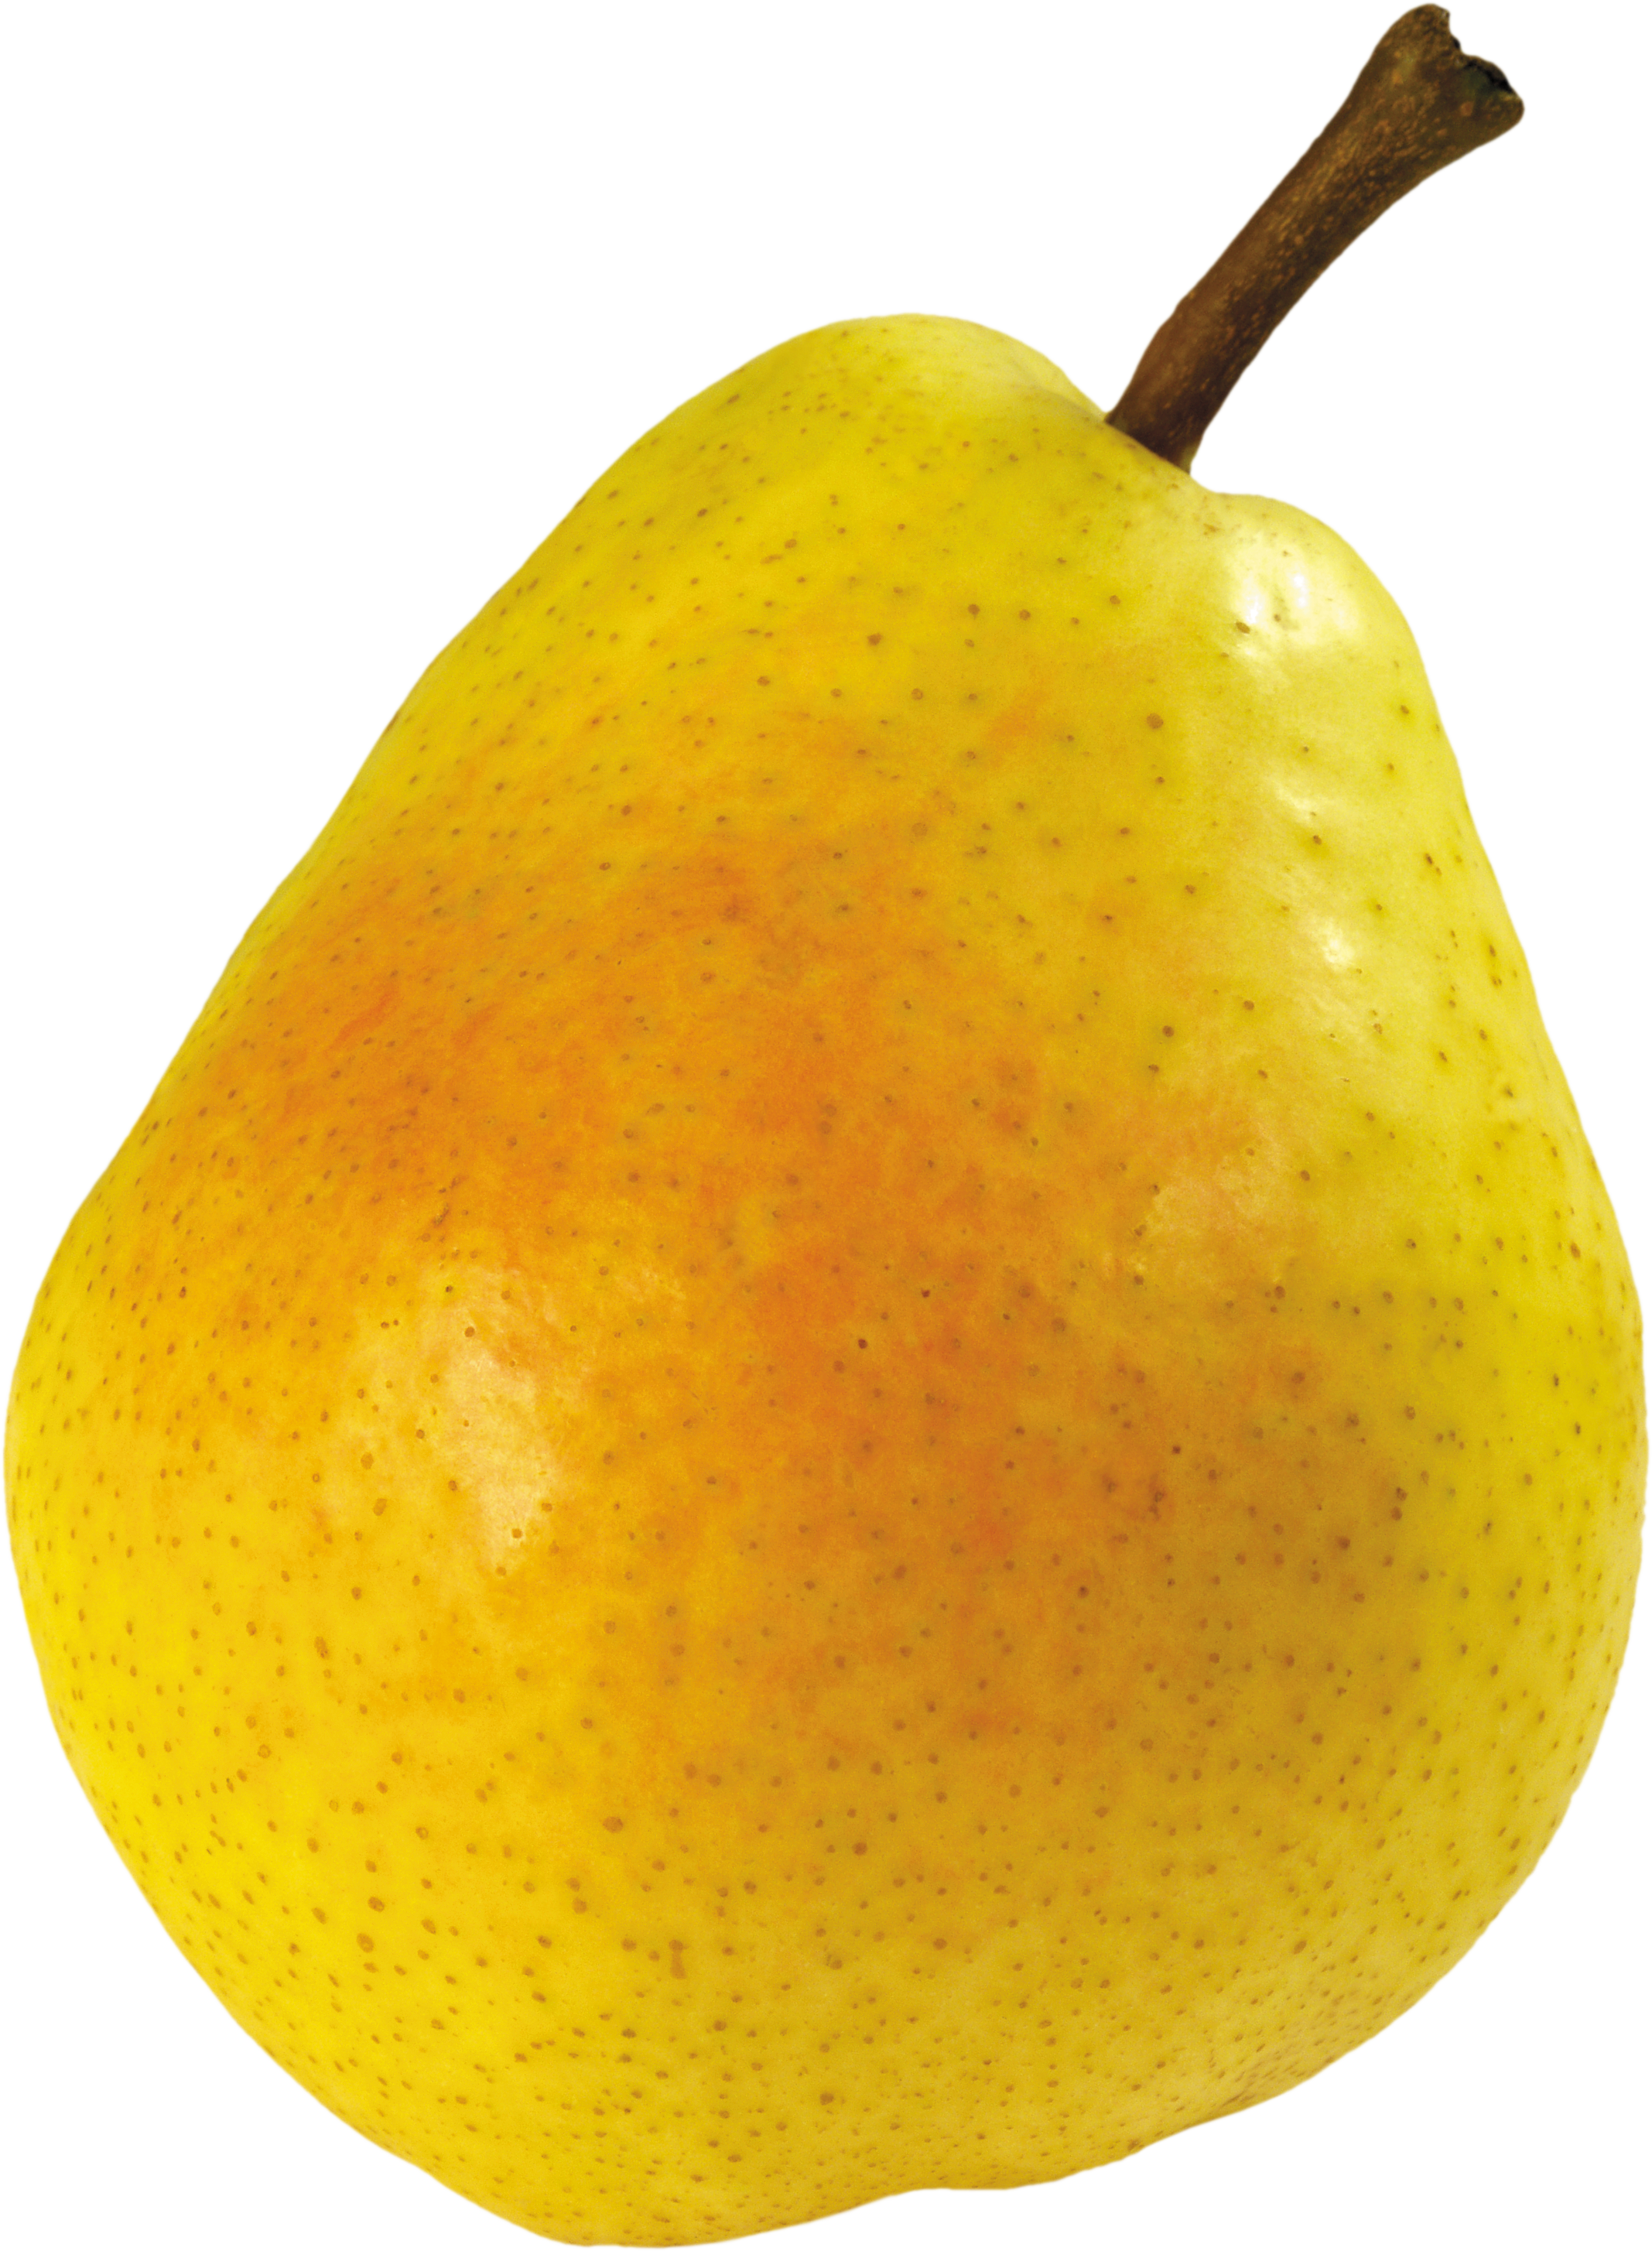 Ripe pear PNG image - Pear HD PNG